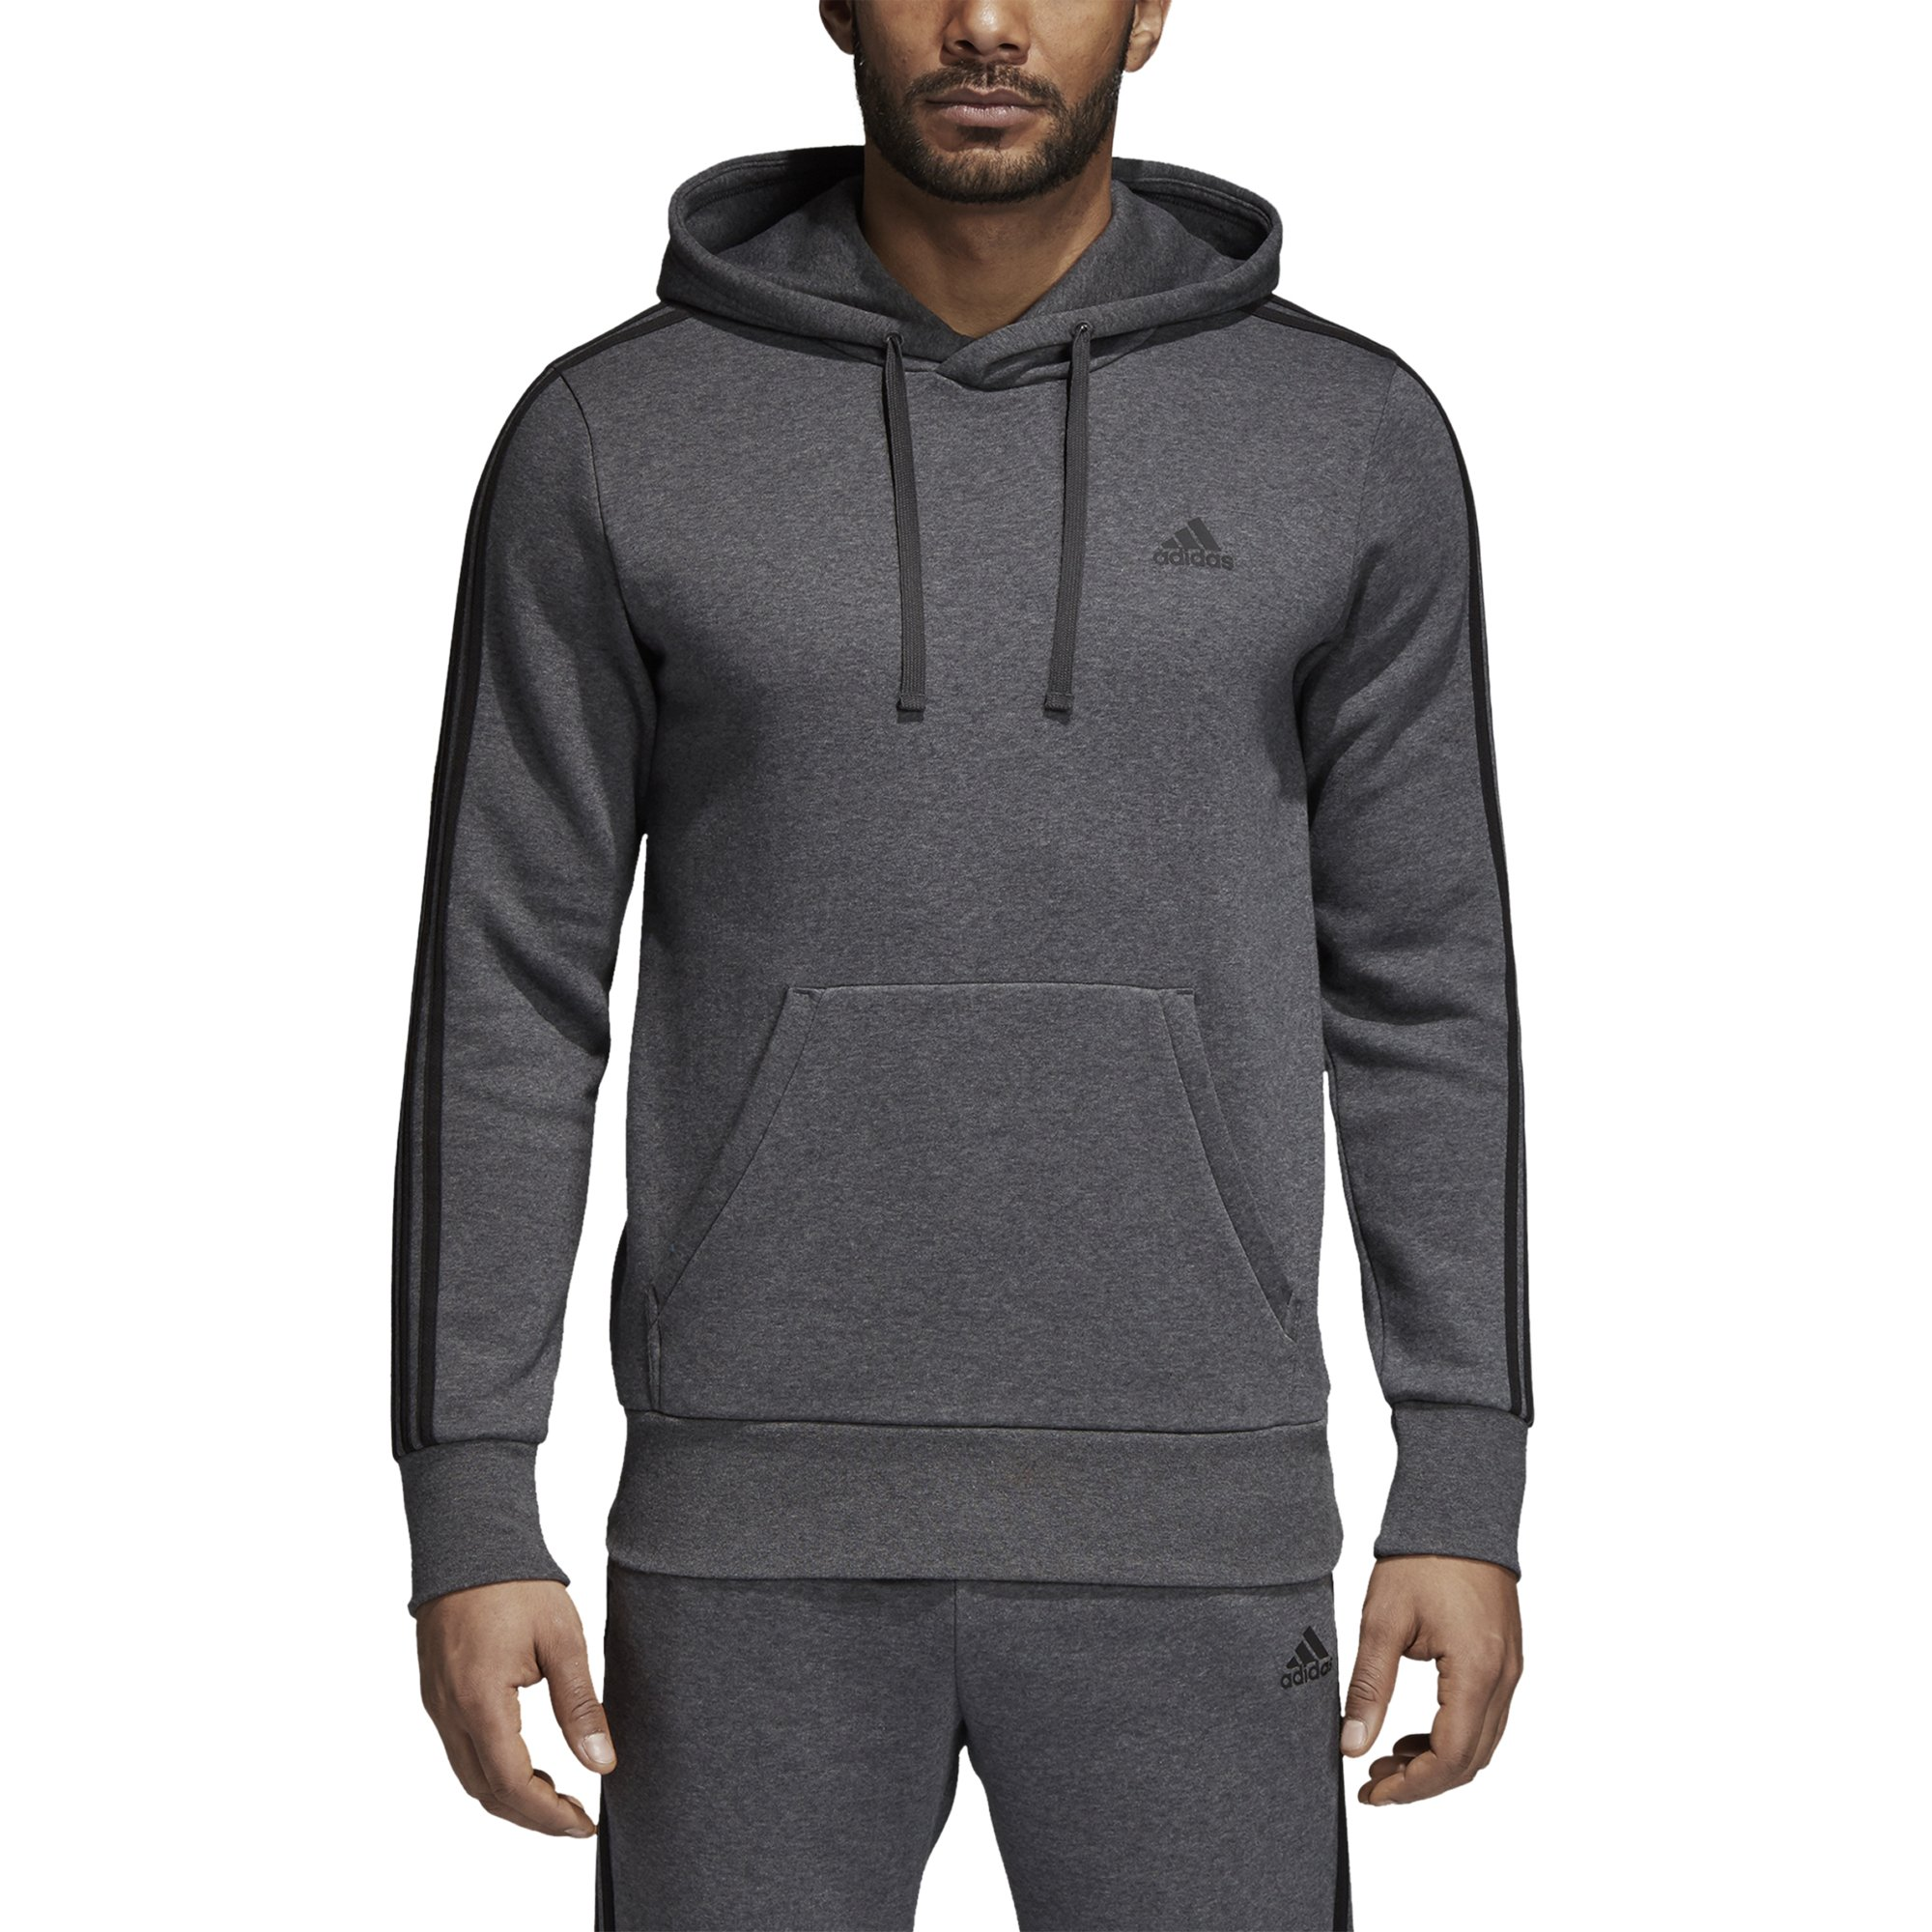 adidas Men's Essentials 3-Stripe Pullover Hoodie, Dark Grey Heather/Black, Large